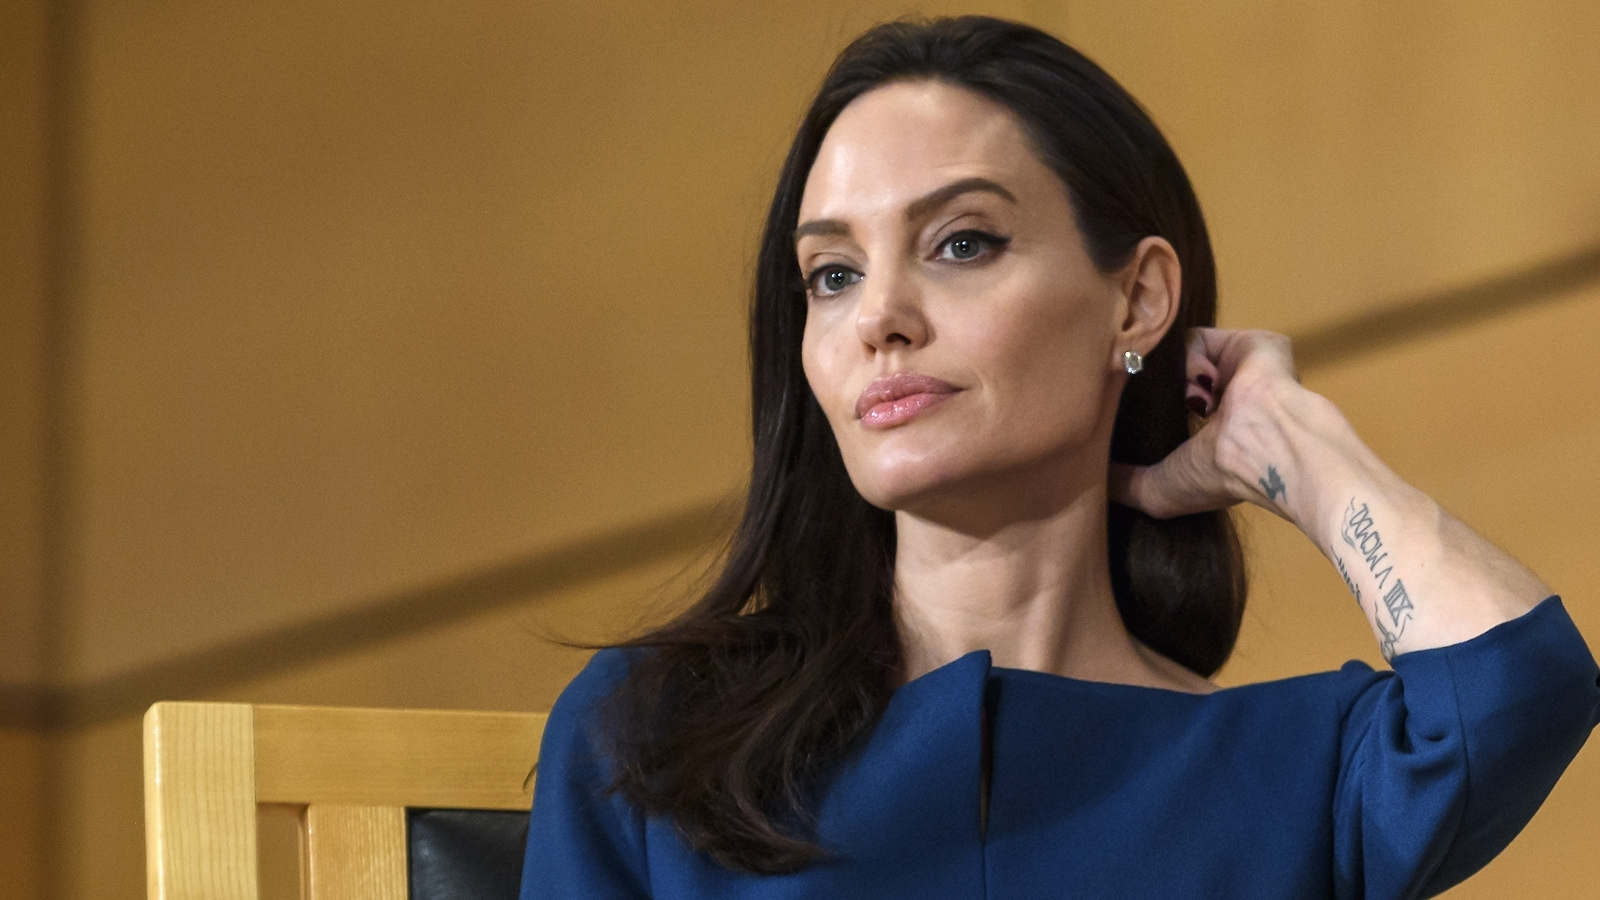 Angelina Jolie's Son Maddox Is Praising Mom and We're Melting